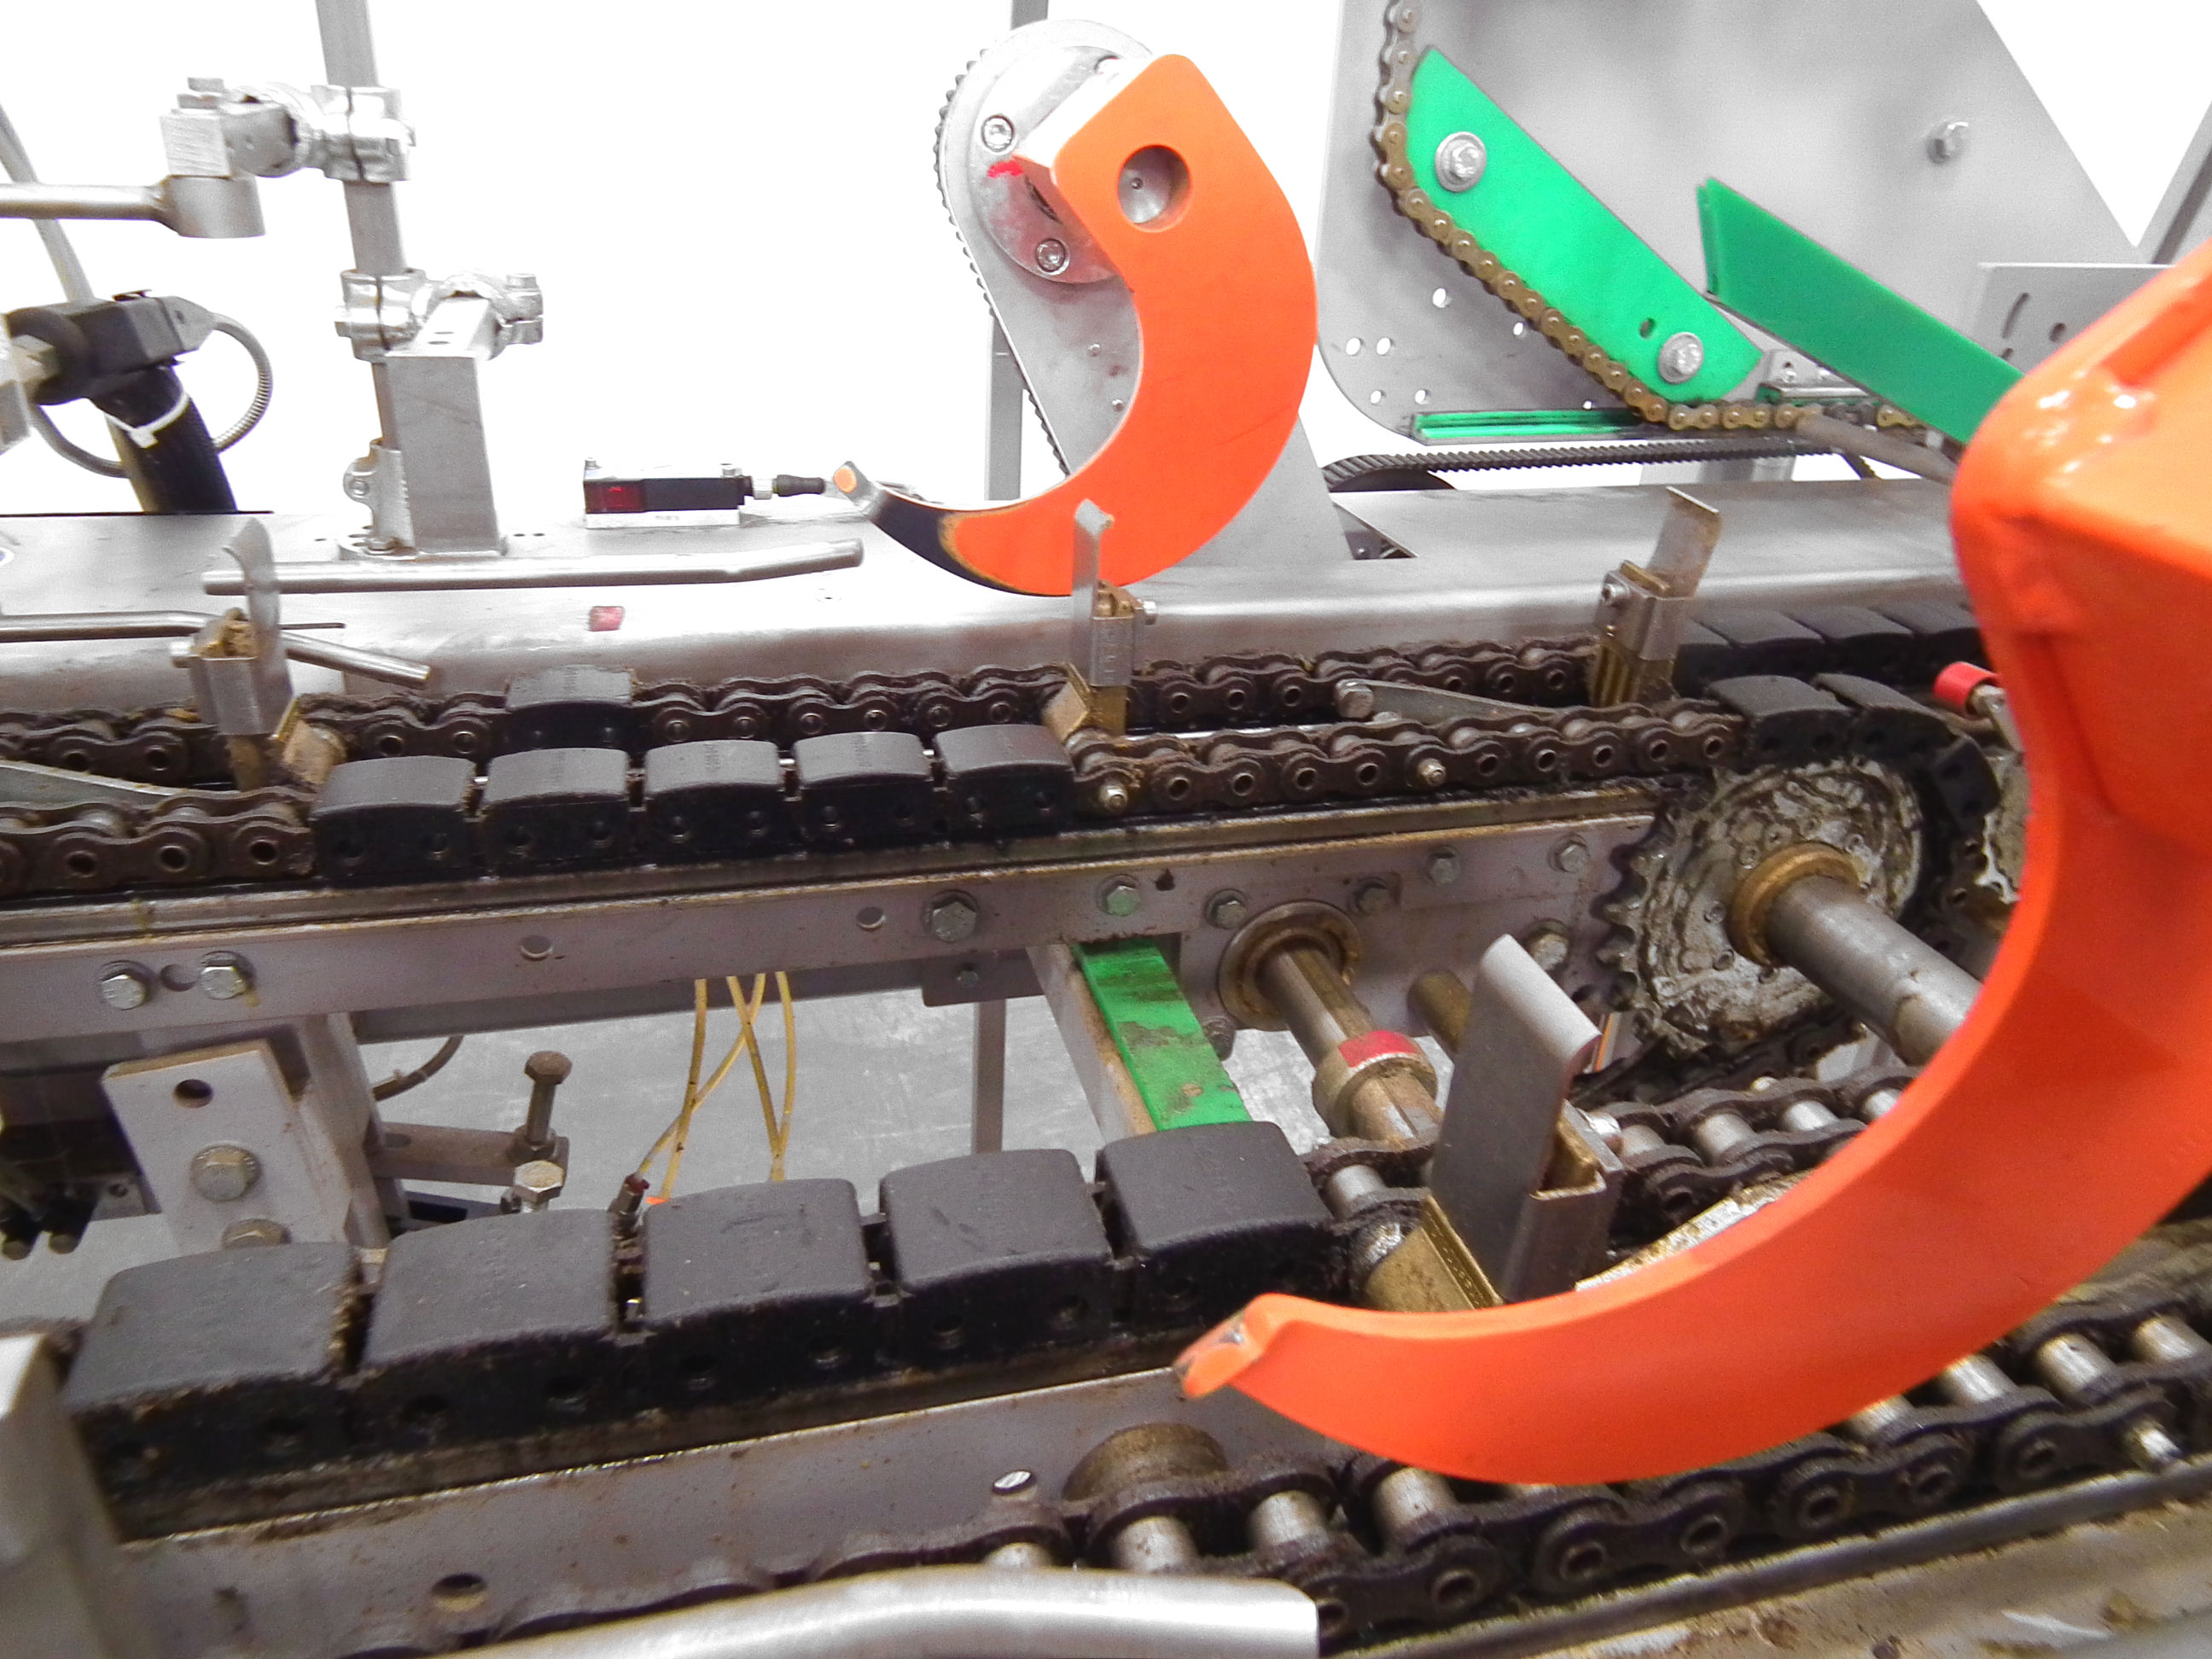 KHS Kisters Tray Packer Model TP60-B A4866 - Image 12 of 19